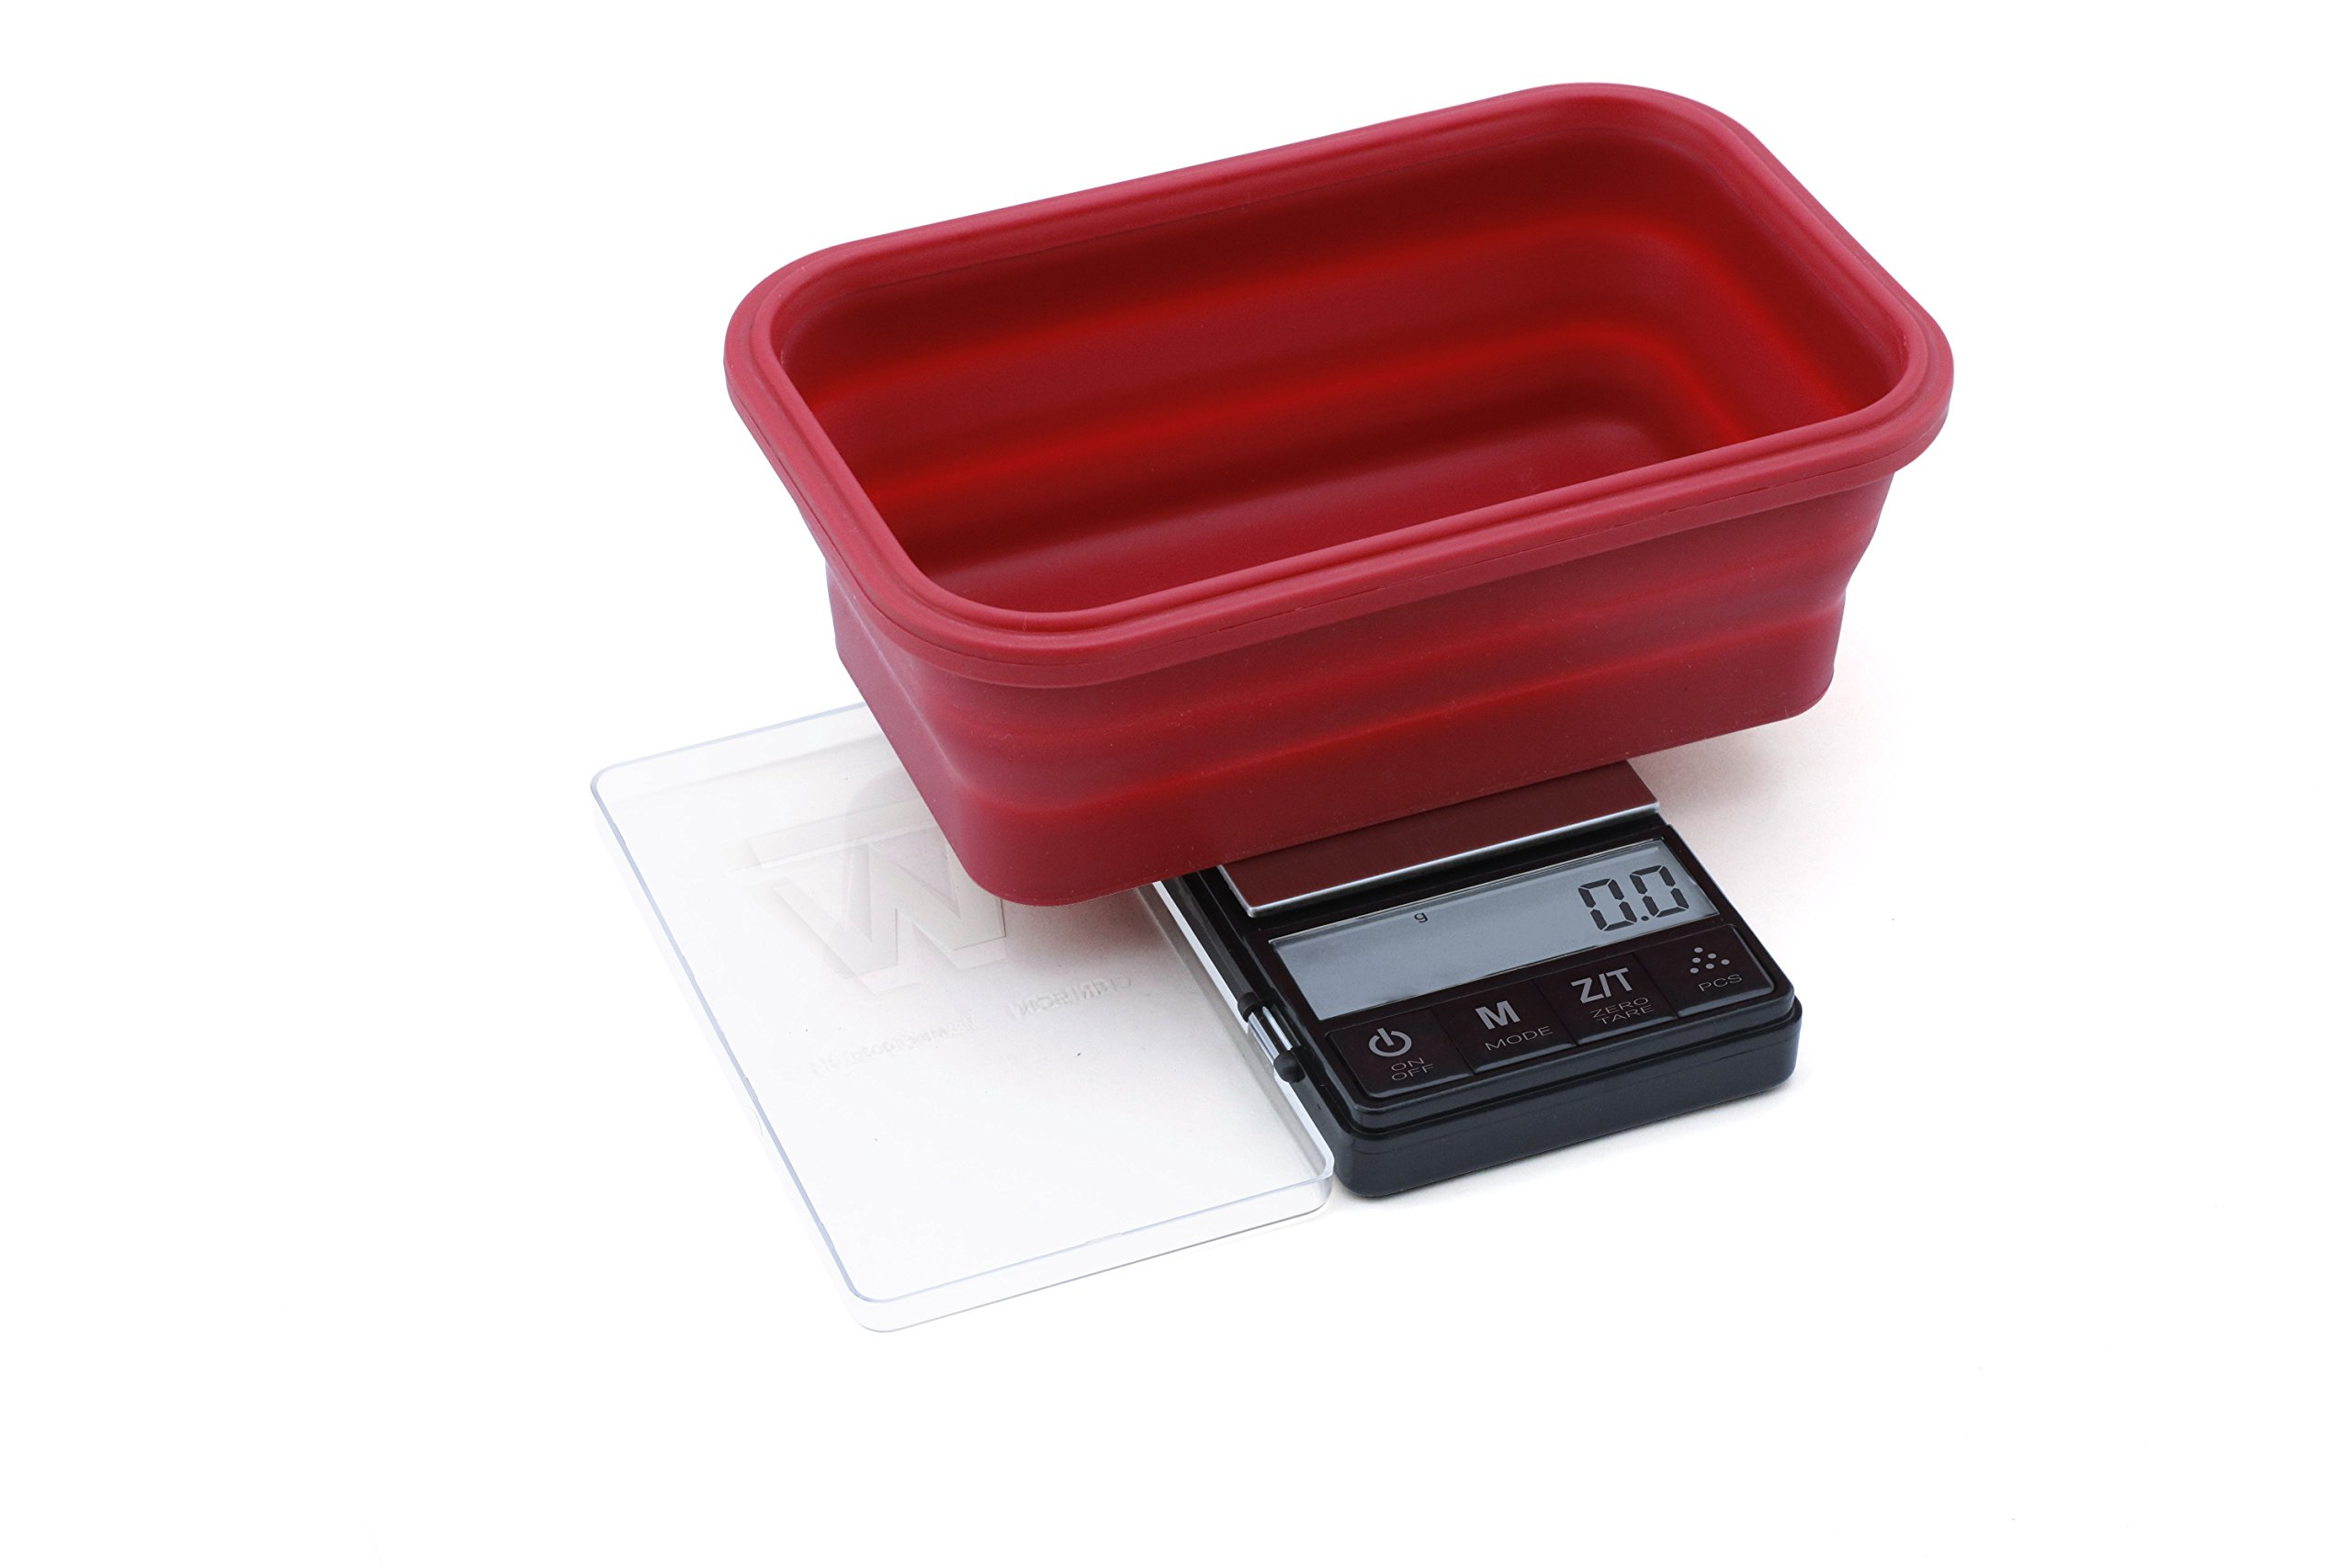 CRIMSON Collapsible Bowl Scale 1000g x 0.1g Black (Bowl: Red)